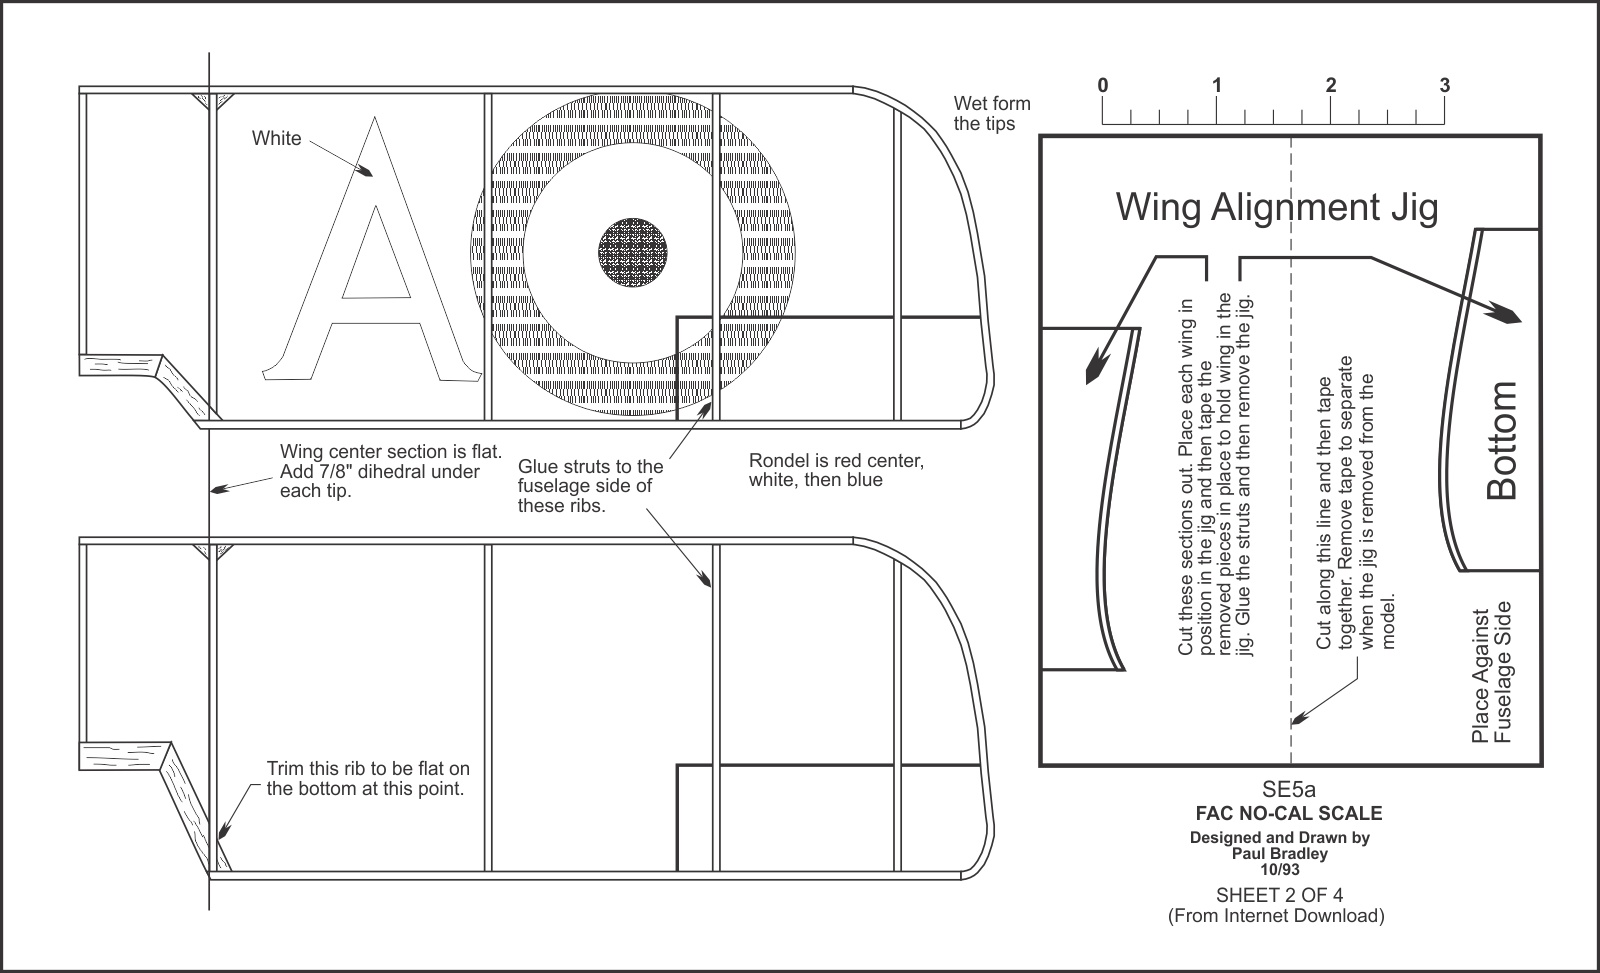 https://0201.nccdn.net/1_2/000/000/0a4/f40/Se5-Right-Wings---Alignment-Template-1600x973.jpg